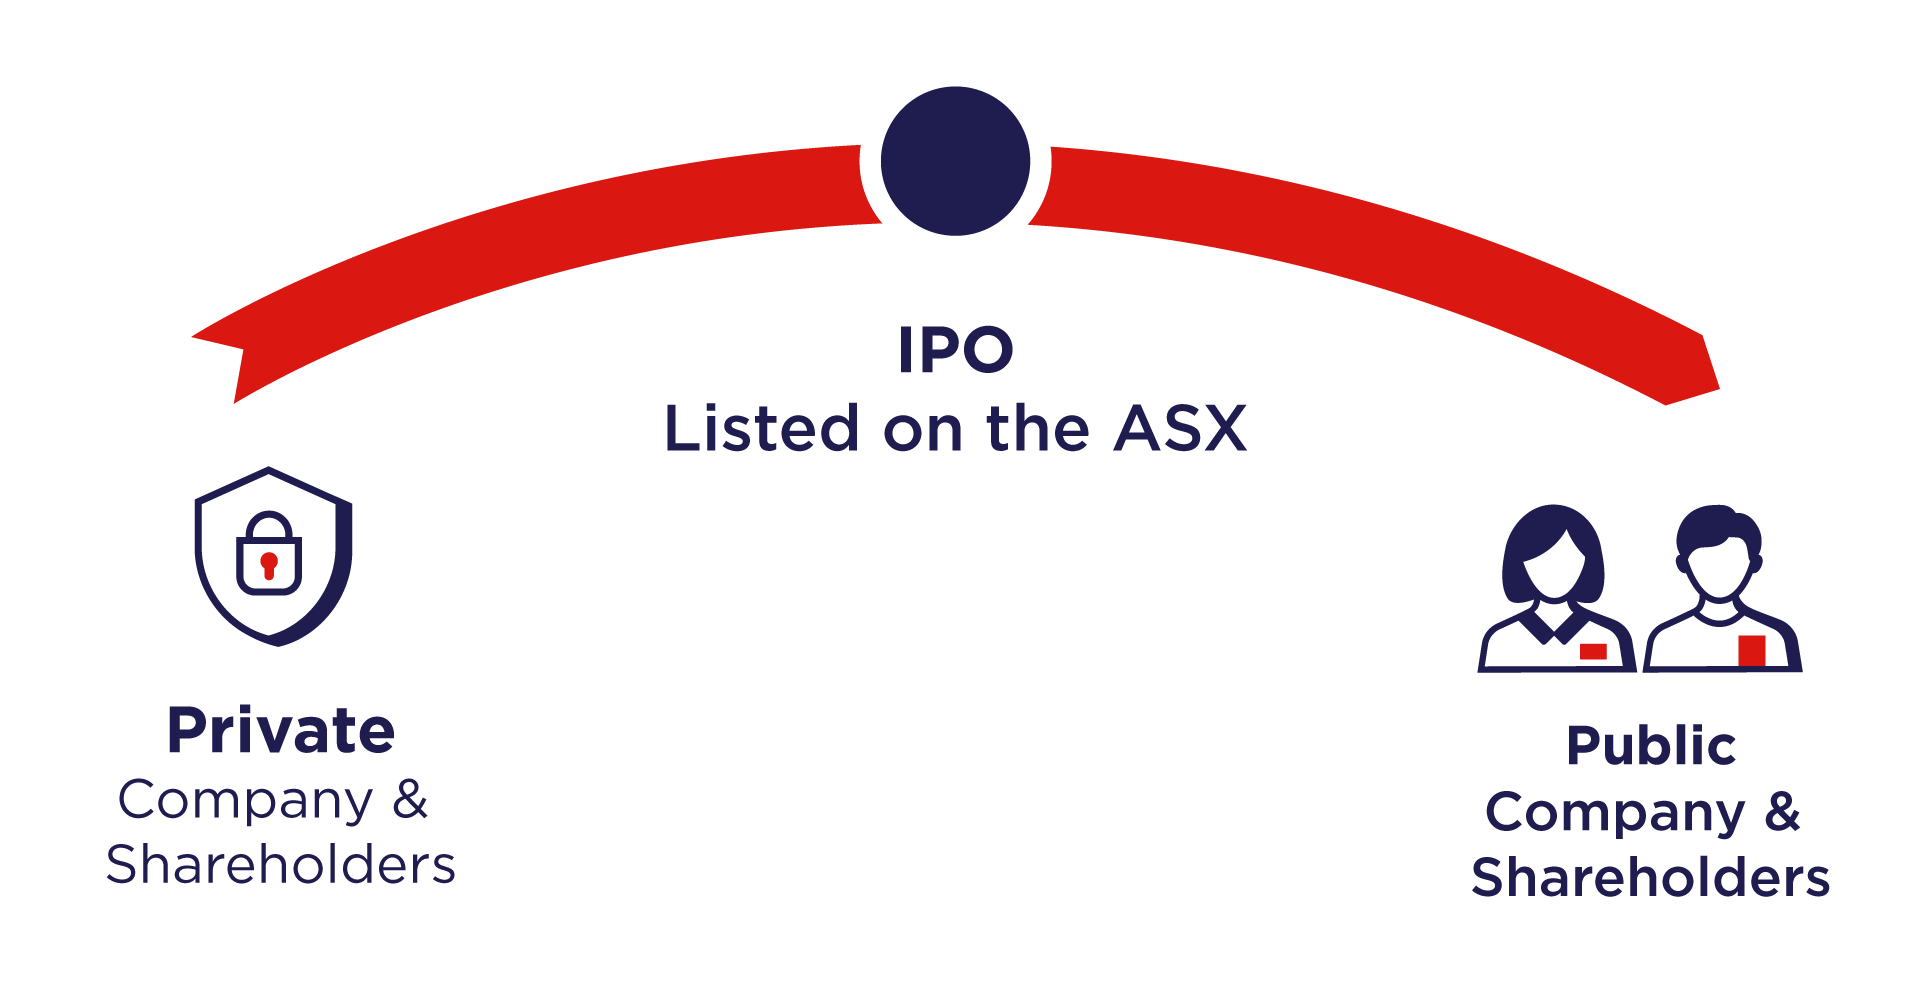 A graph highlighting how a company issues an IPO and is listed on the ASX.